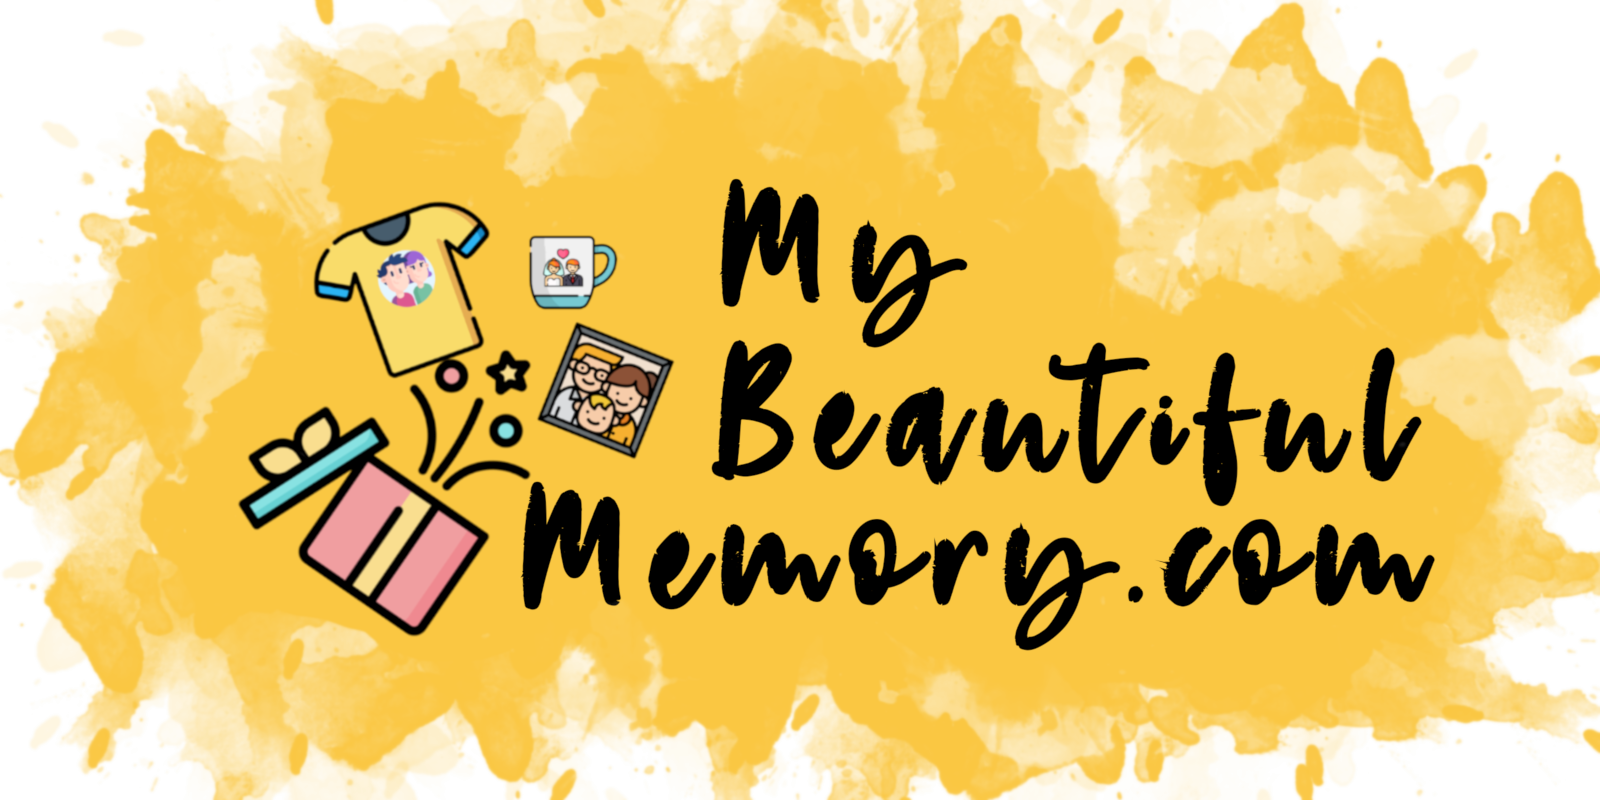 MyBeautifulMemory - Digital Painting New Logo